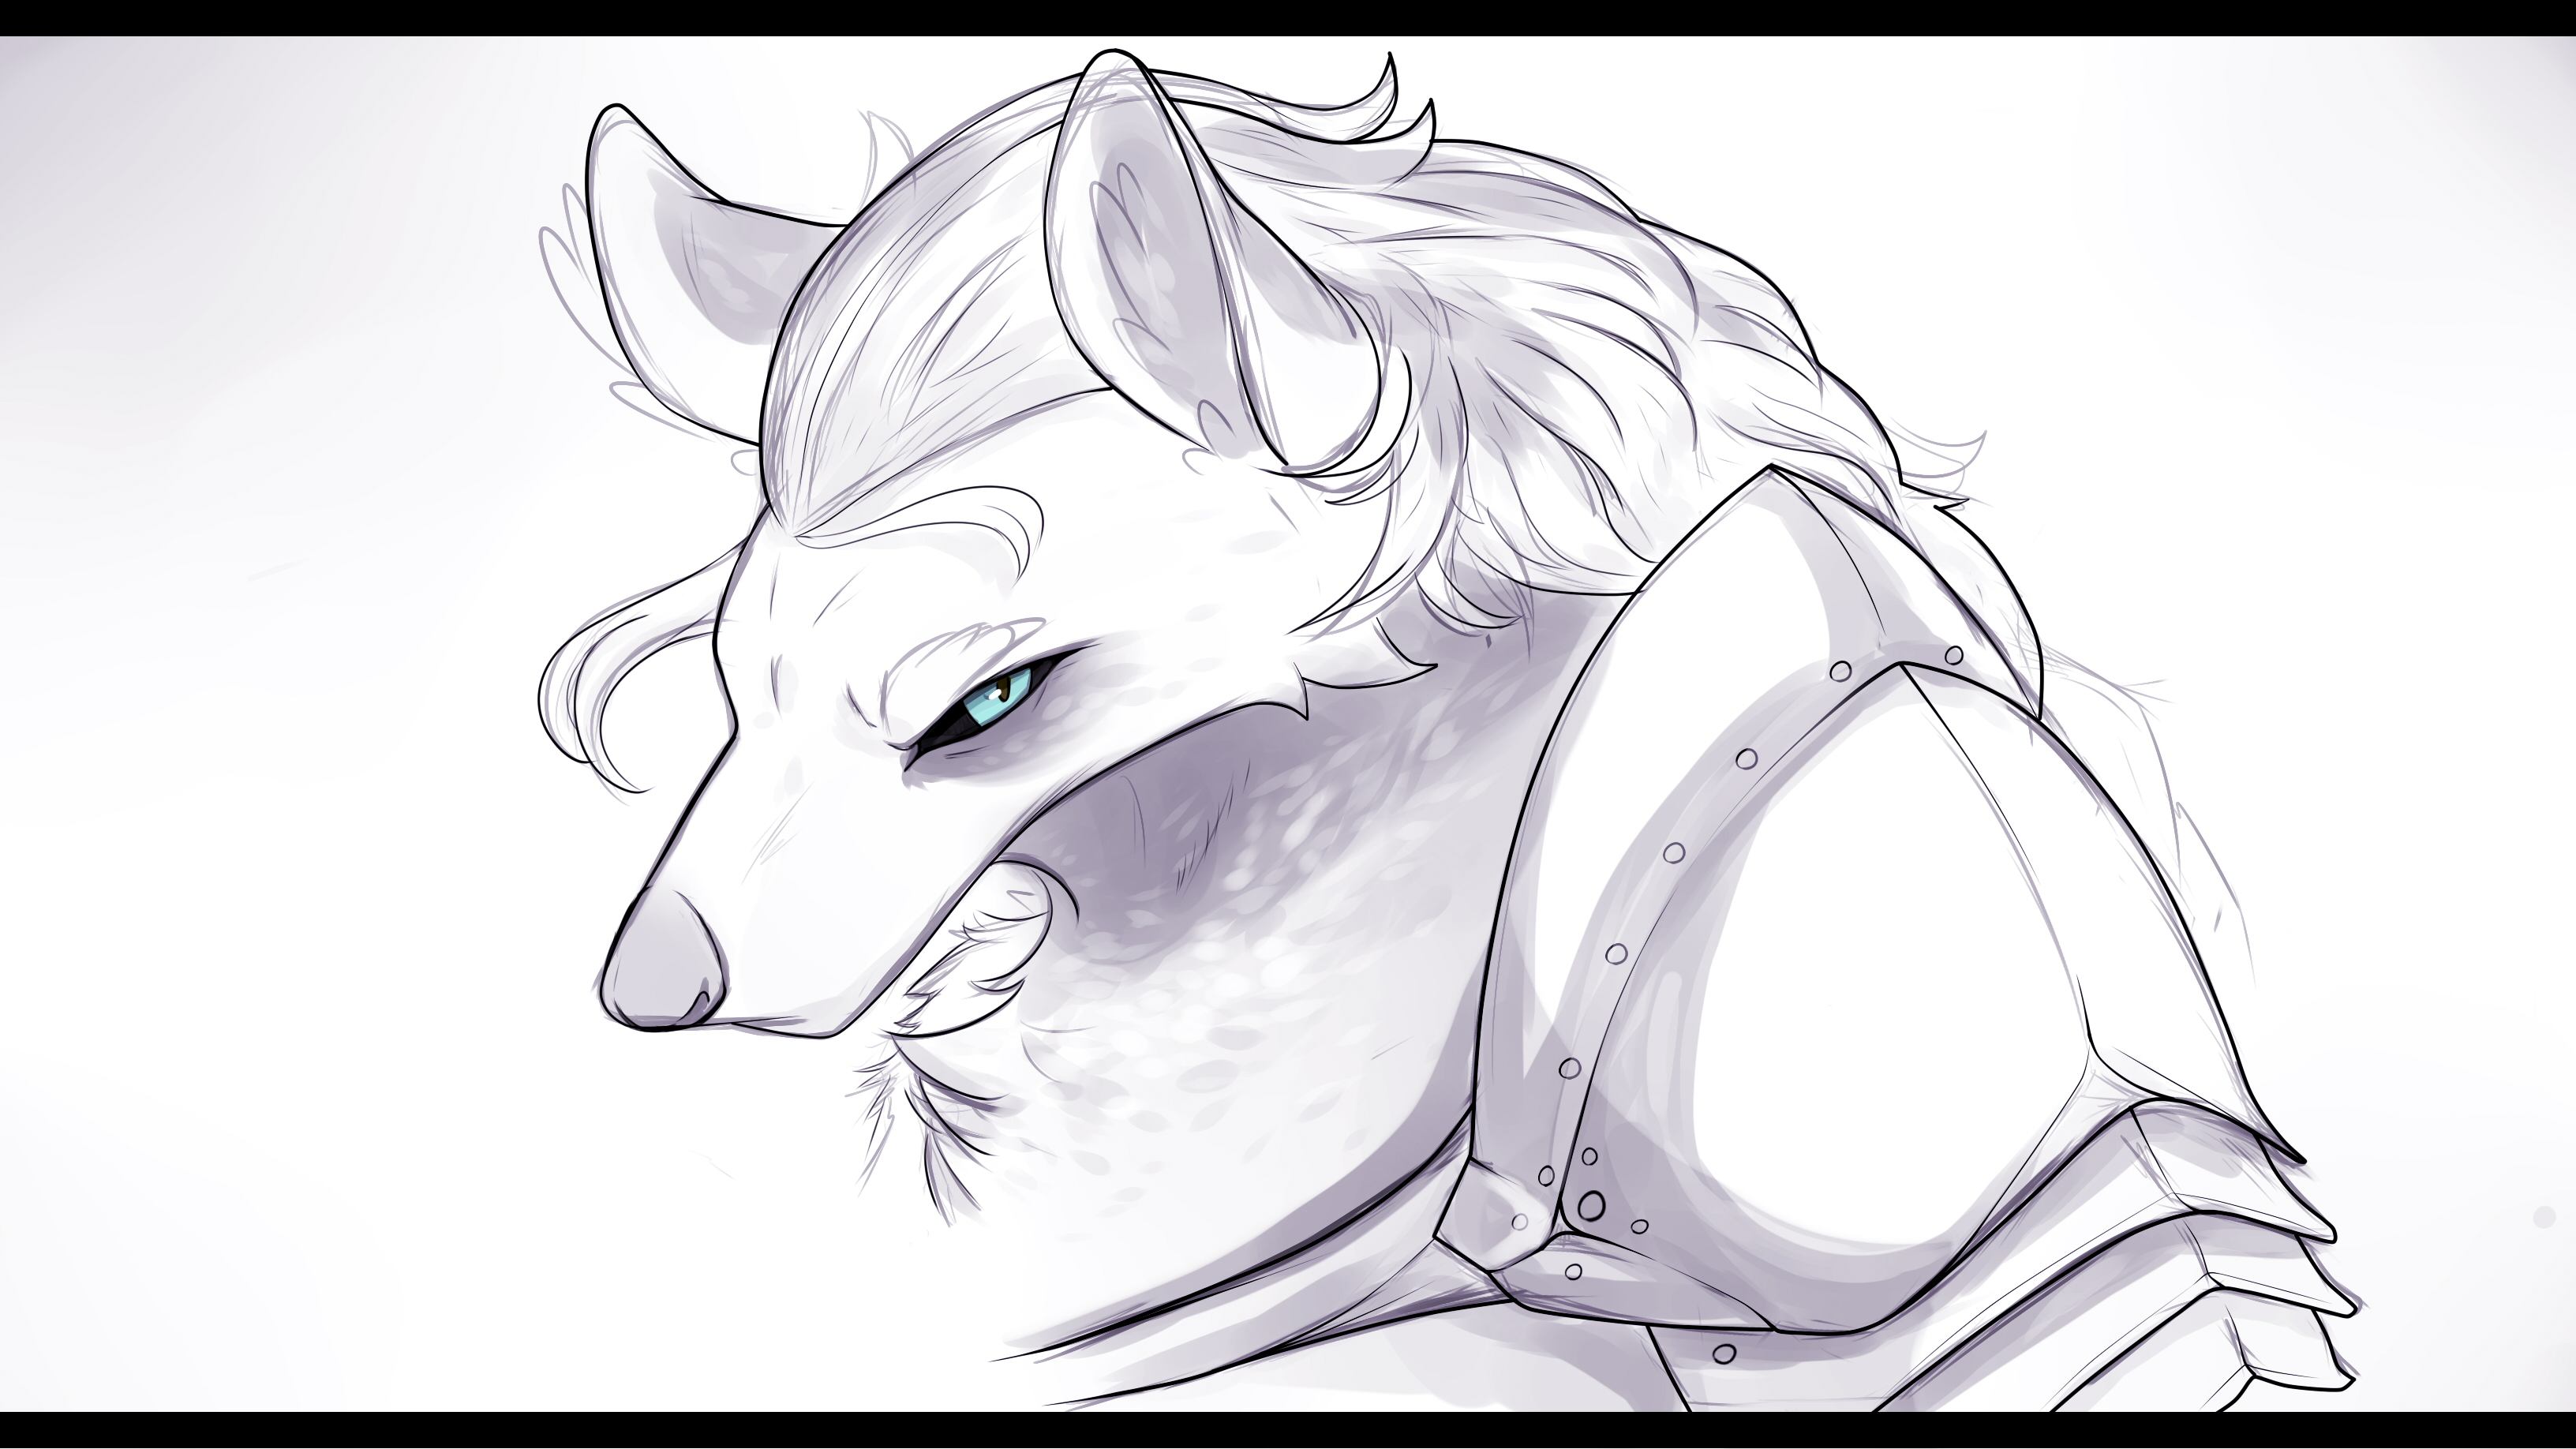 Wolfy armored